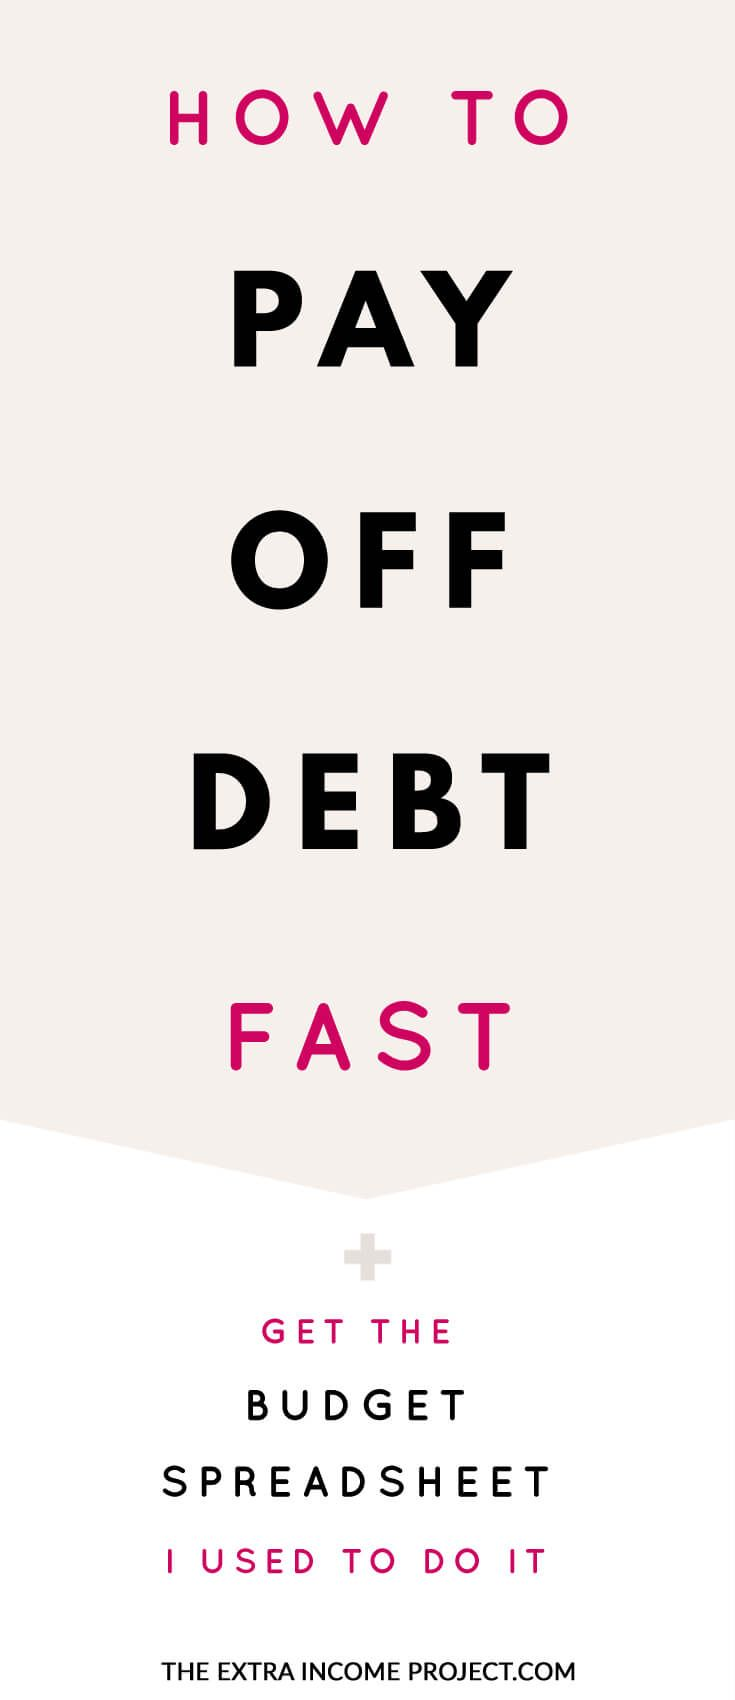 Debt. It's something we all experience at some point in our lives. If you want to pay off debt quickly this article provides useful debt…